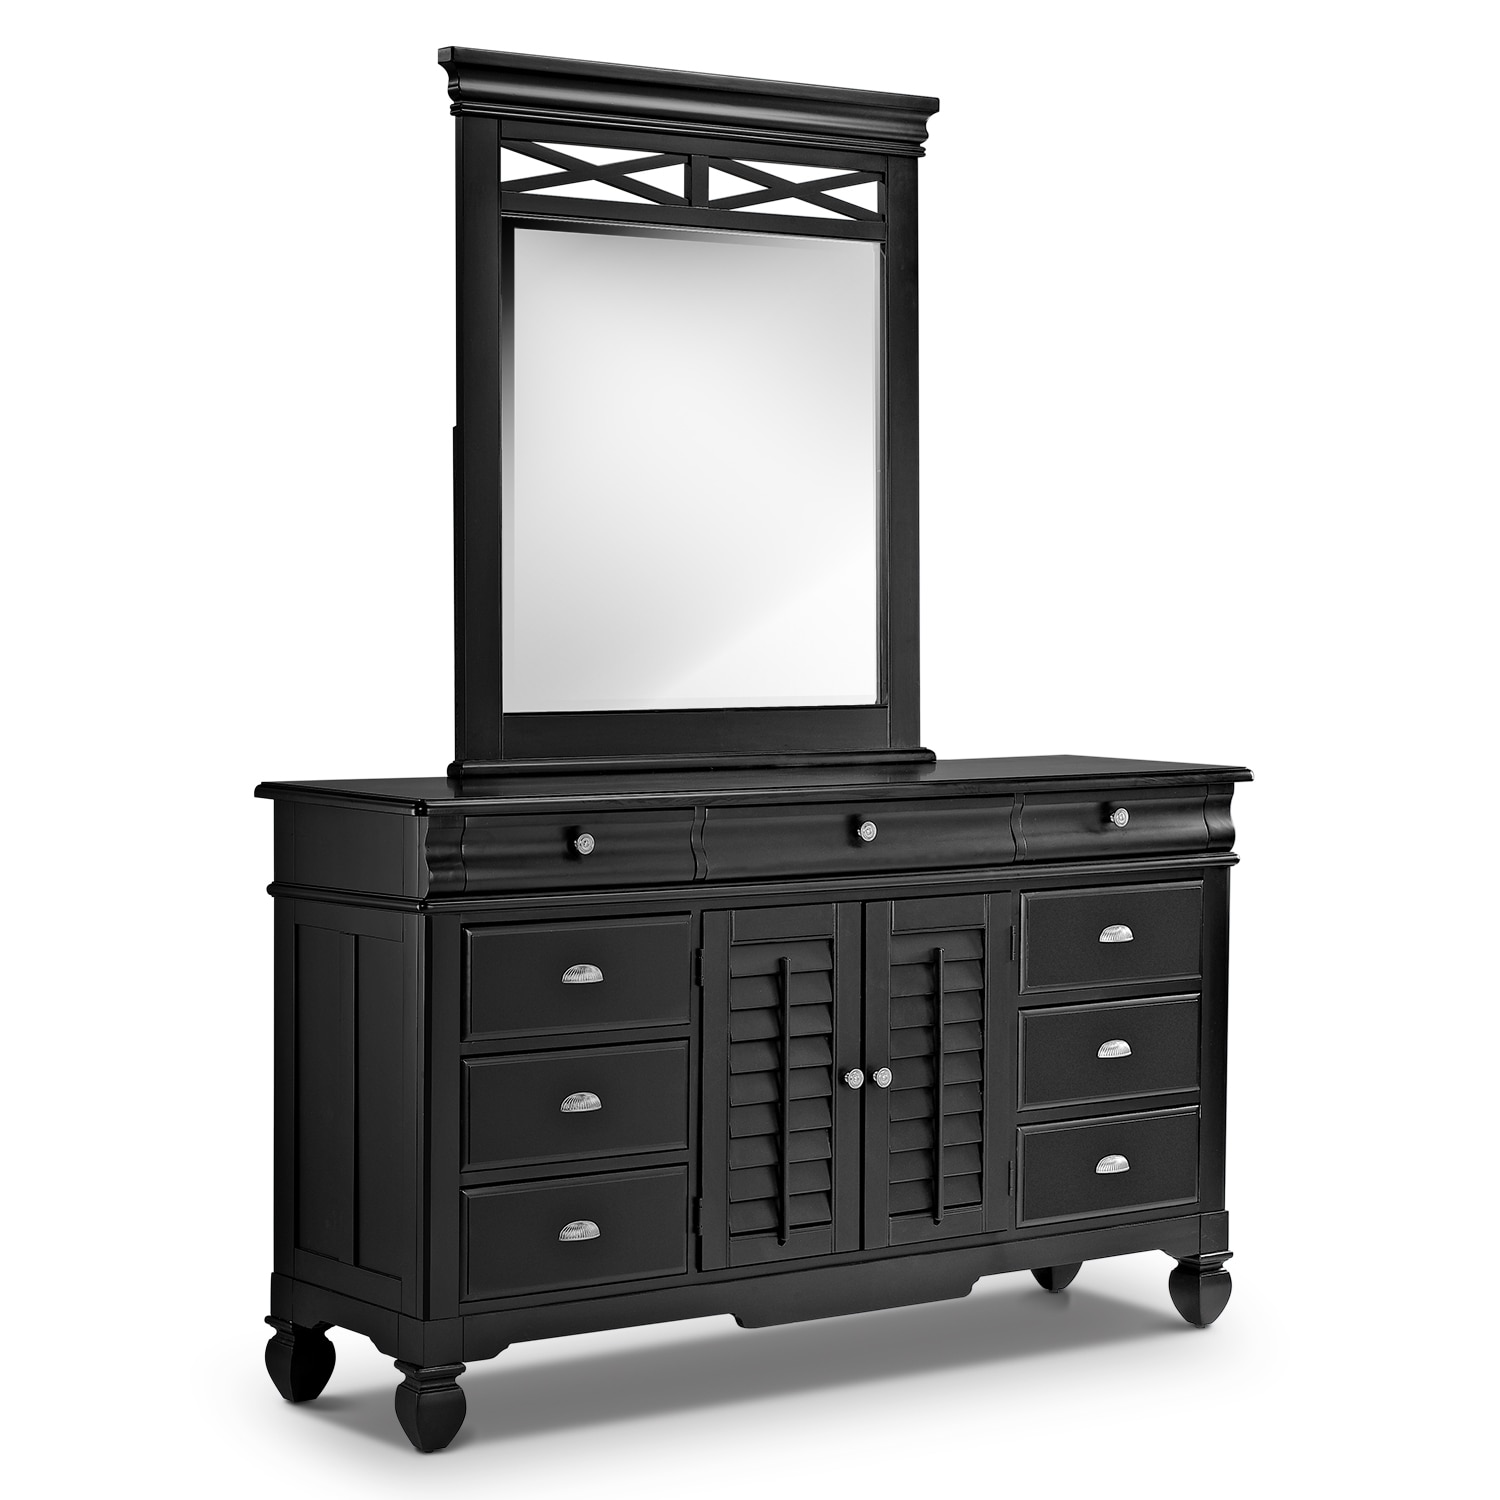 Bedroom Furniture - Plantation Cove Black Dresser & Mirror